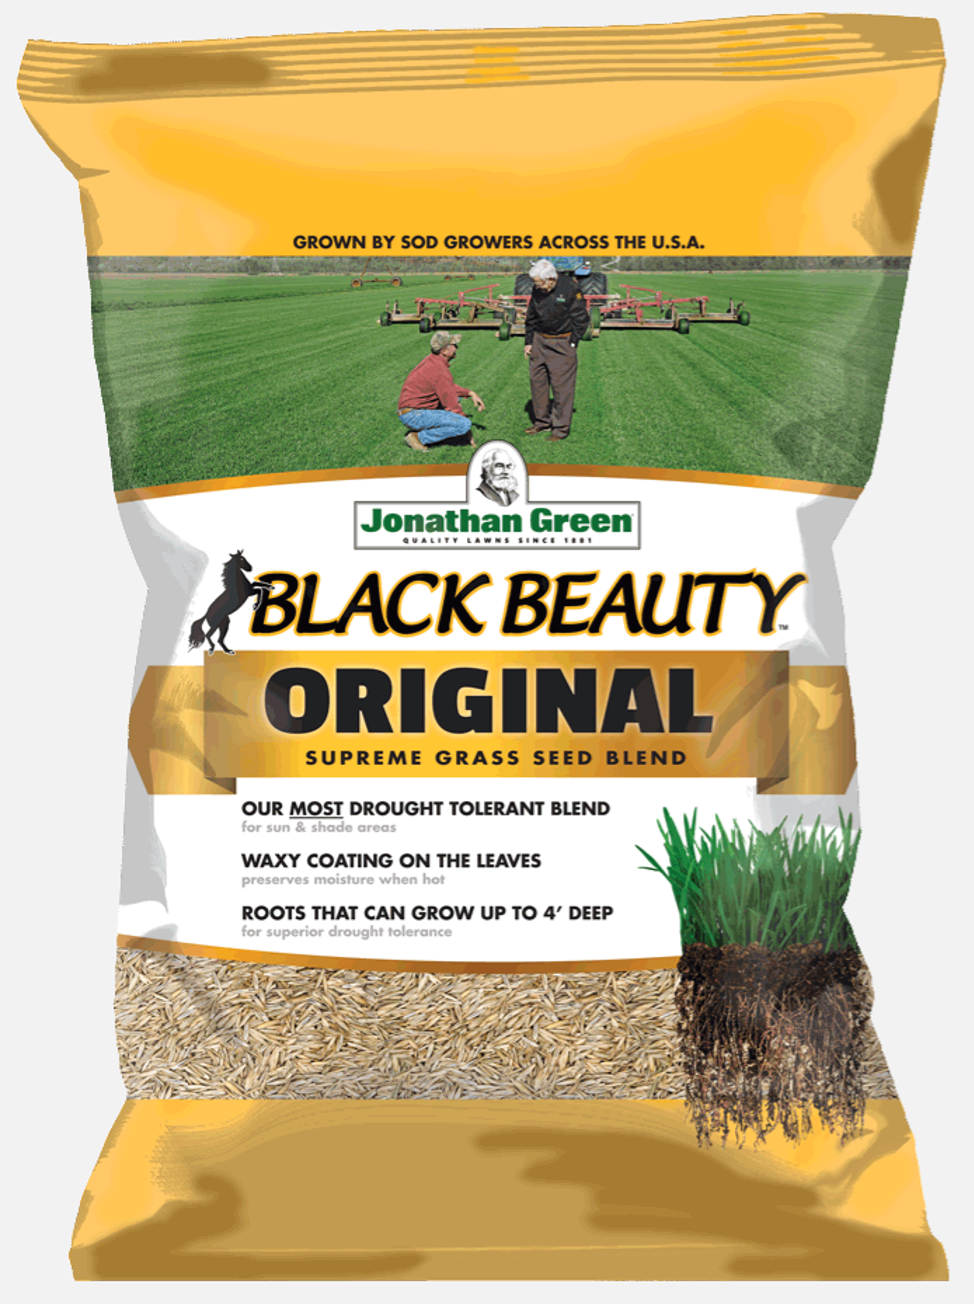 Jonathan Green Black Beauty Grass Seed